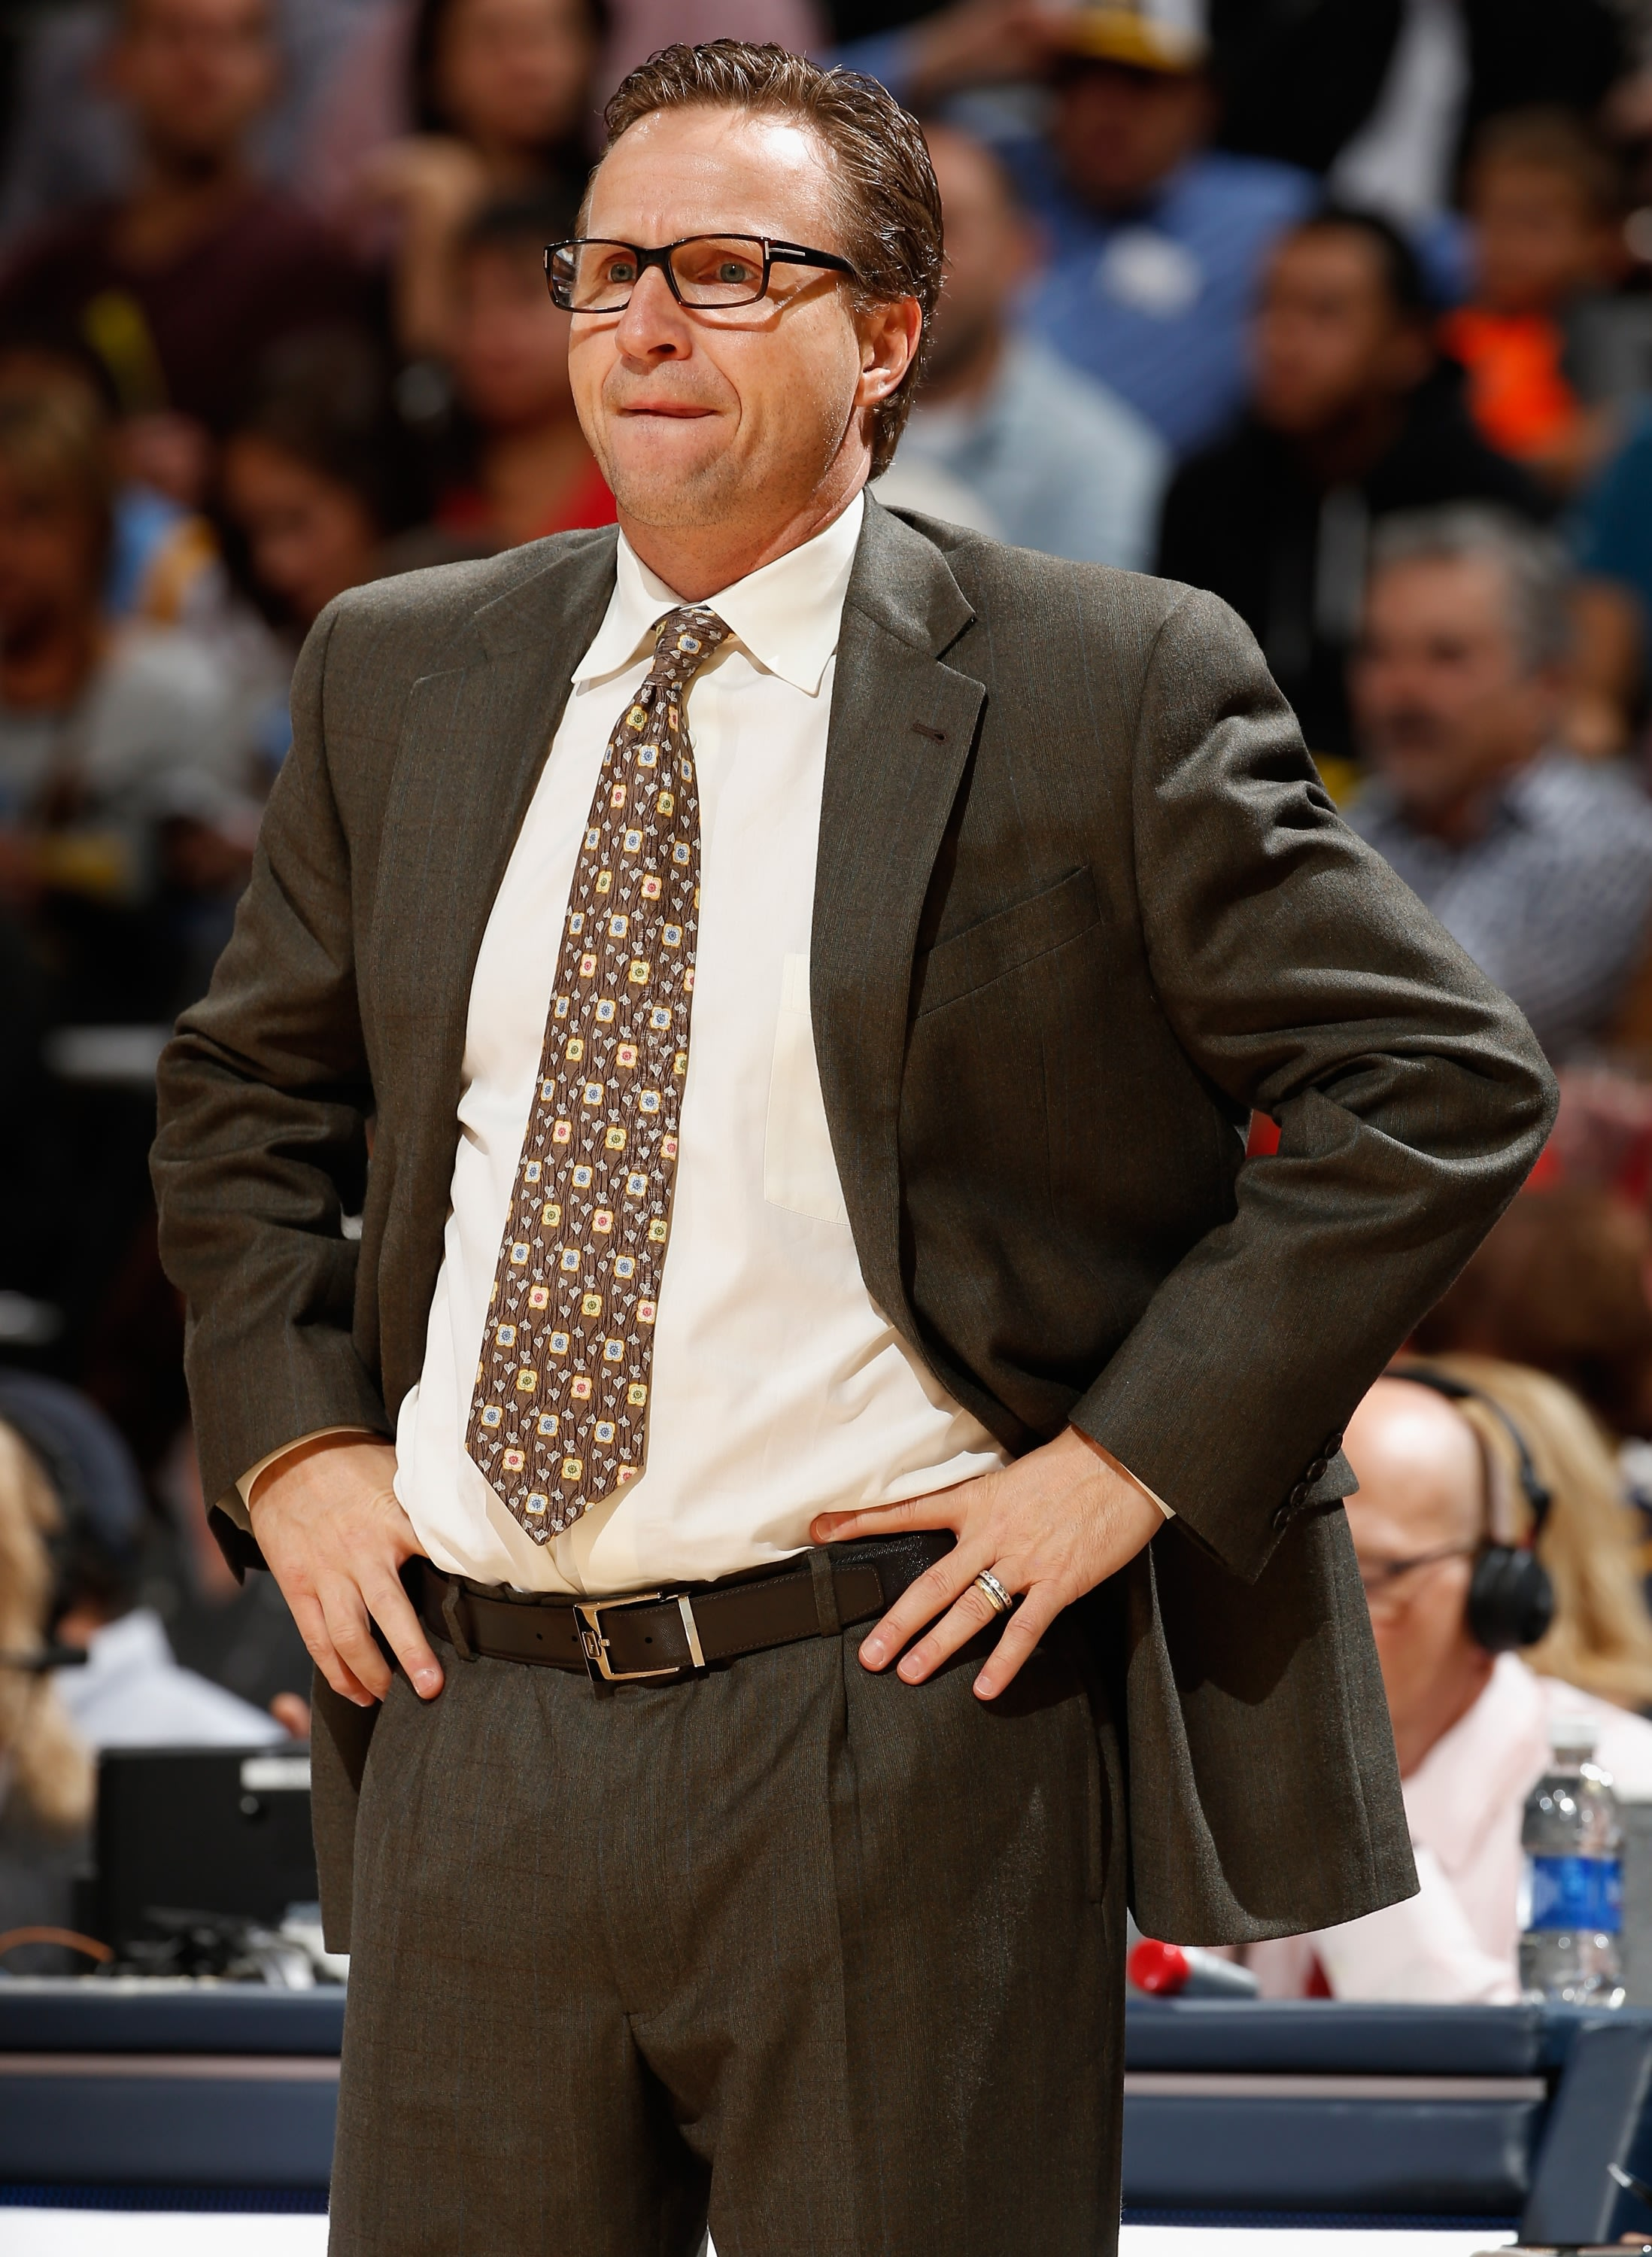 Scott Brooks guided the Thunder to the 2012 NBA Finals. (Getty Images)